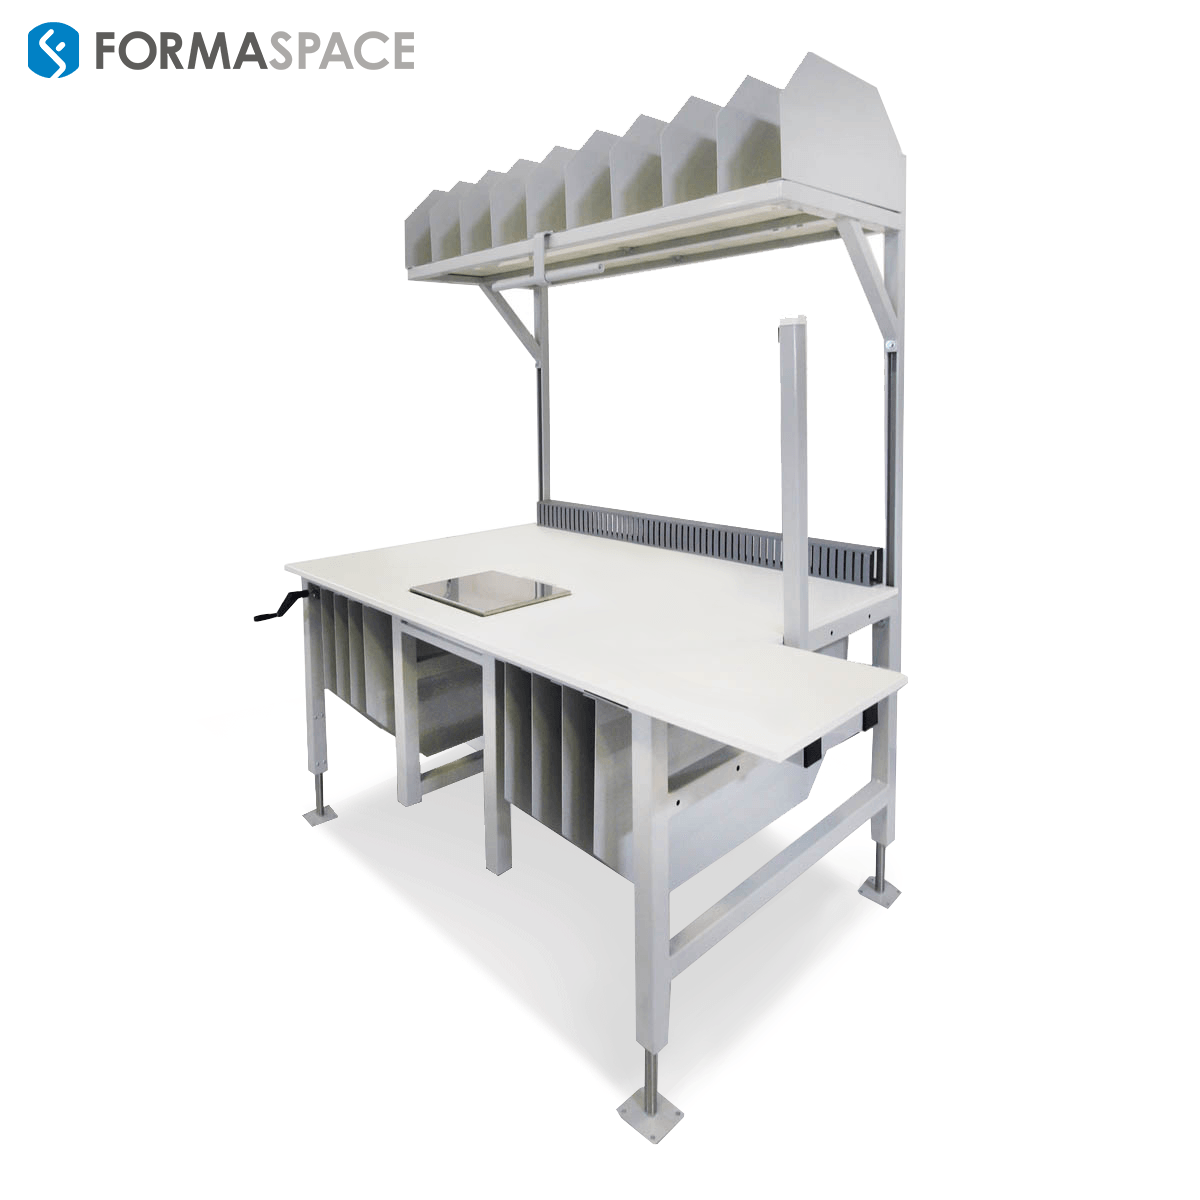 High Quality Linear Flow Packing Station